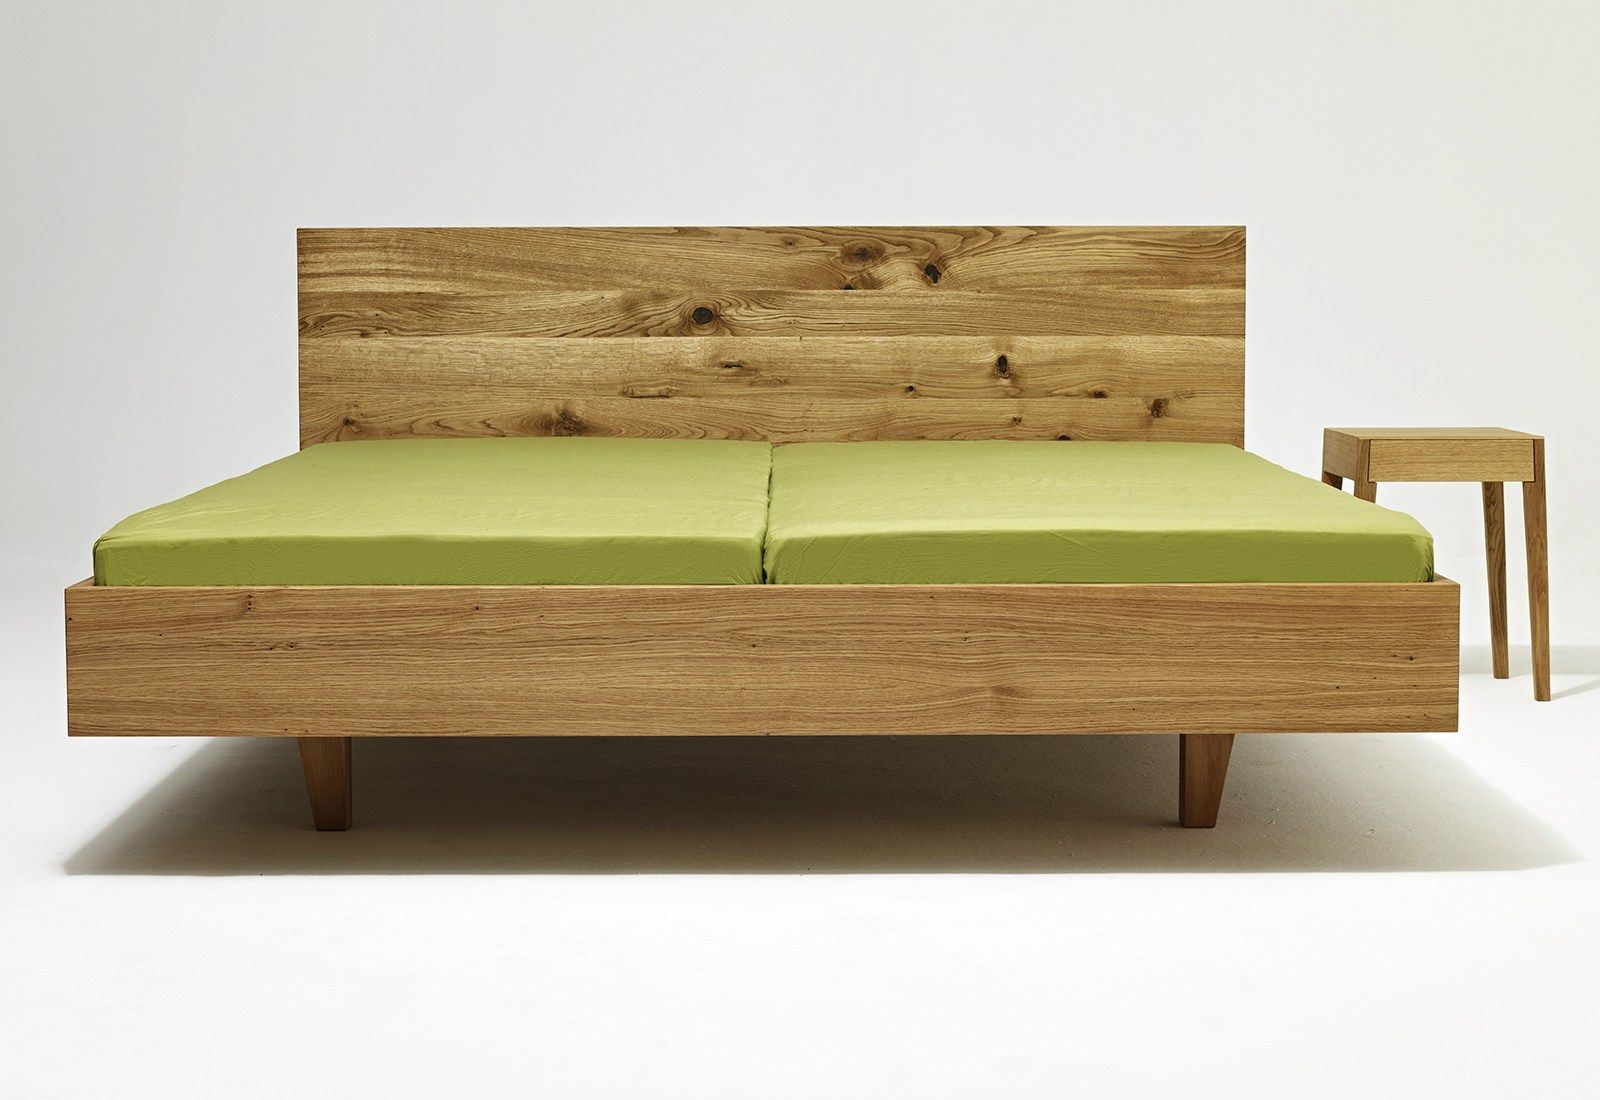 Double bed designs in wood - Contemporary Style Wooden Double Bed Design By Laszlo Szikszai 2014